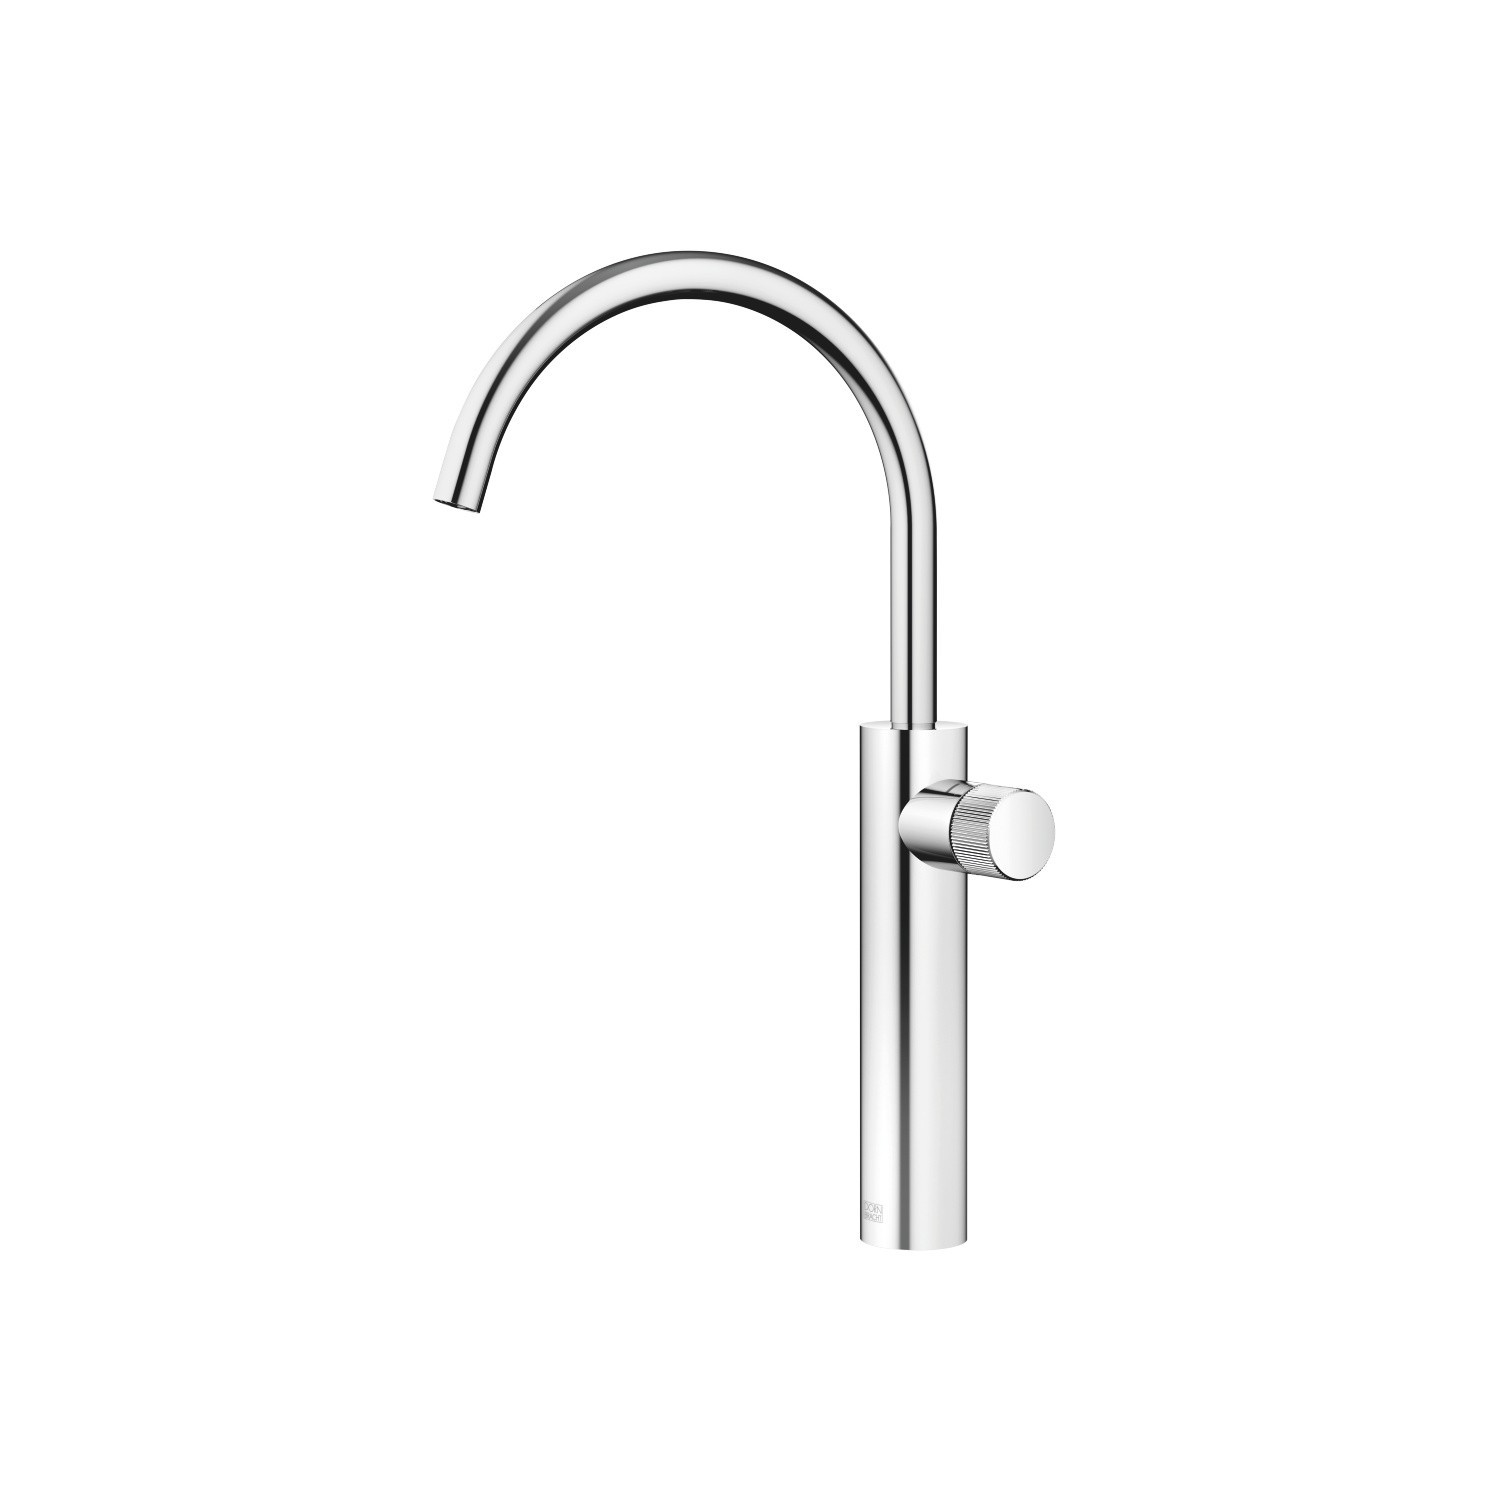 DORNBRACHT 33534665-0010 META PURE 15 5/8 INCH SINGLE HOLE DECK MOUNT LAVATORY MIXER WITH EXTENDED SHANK AND KNOB HANDLE